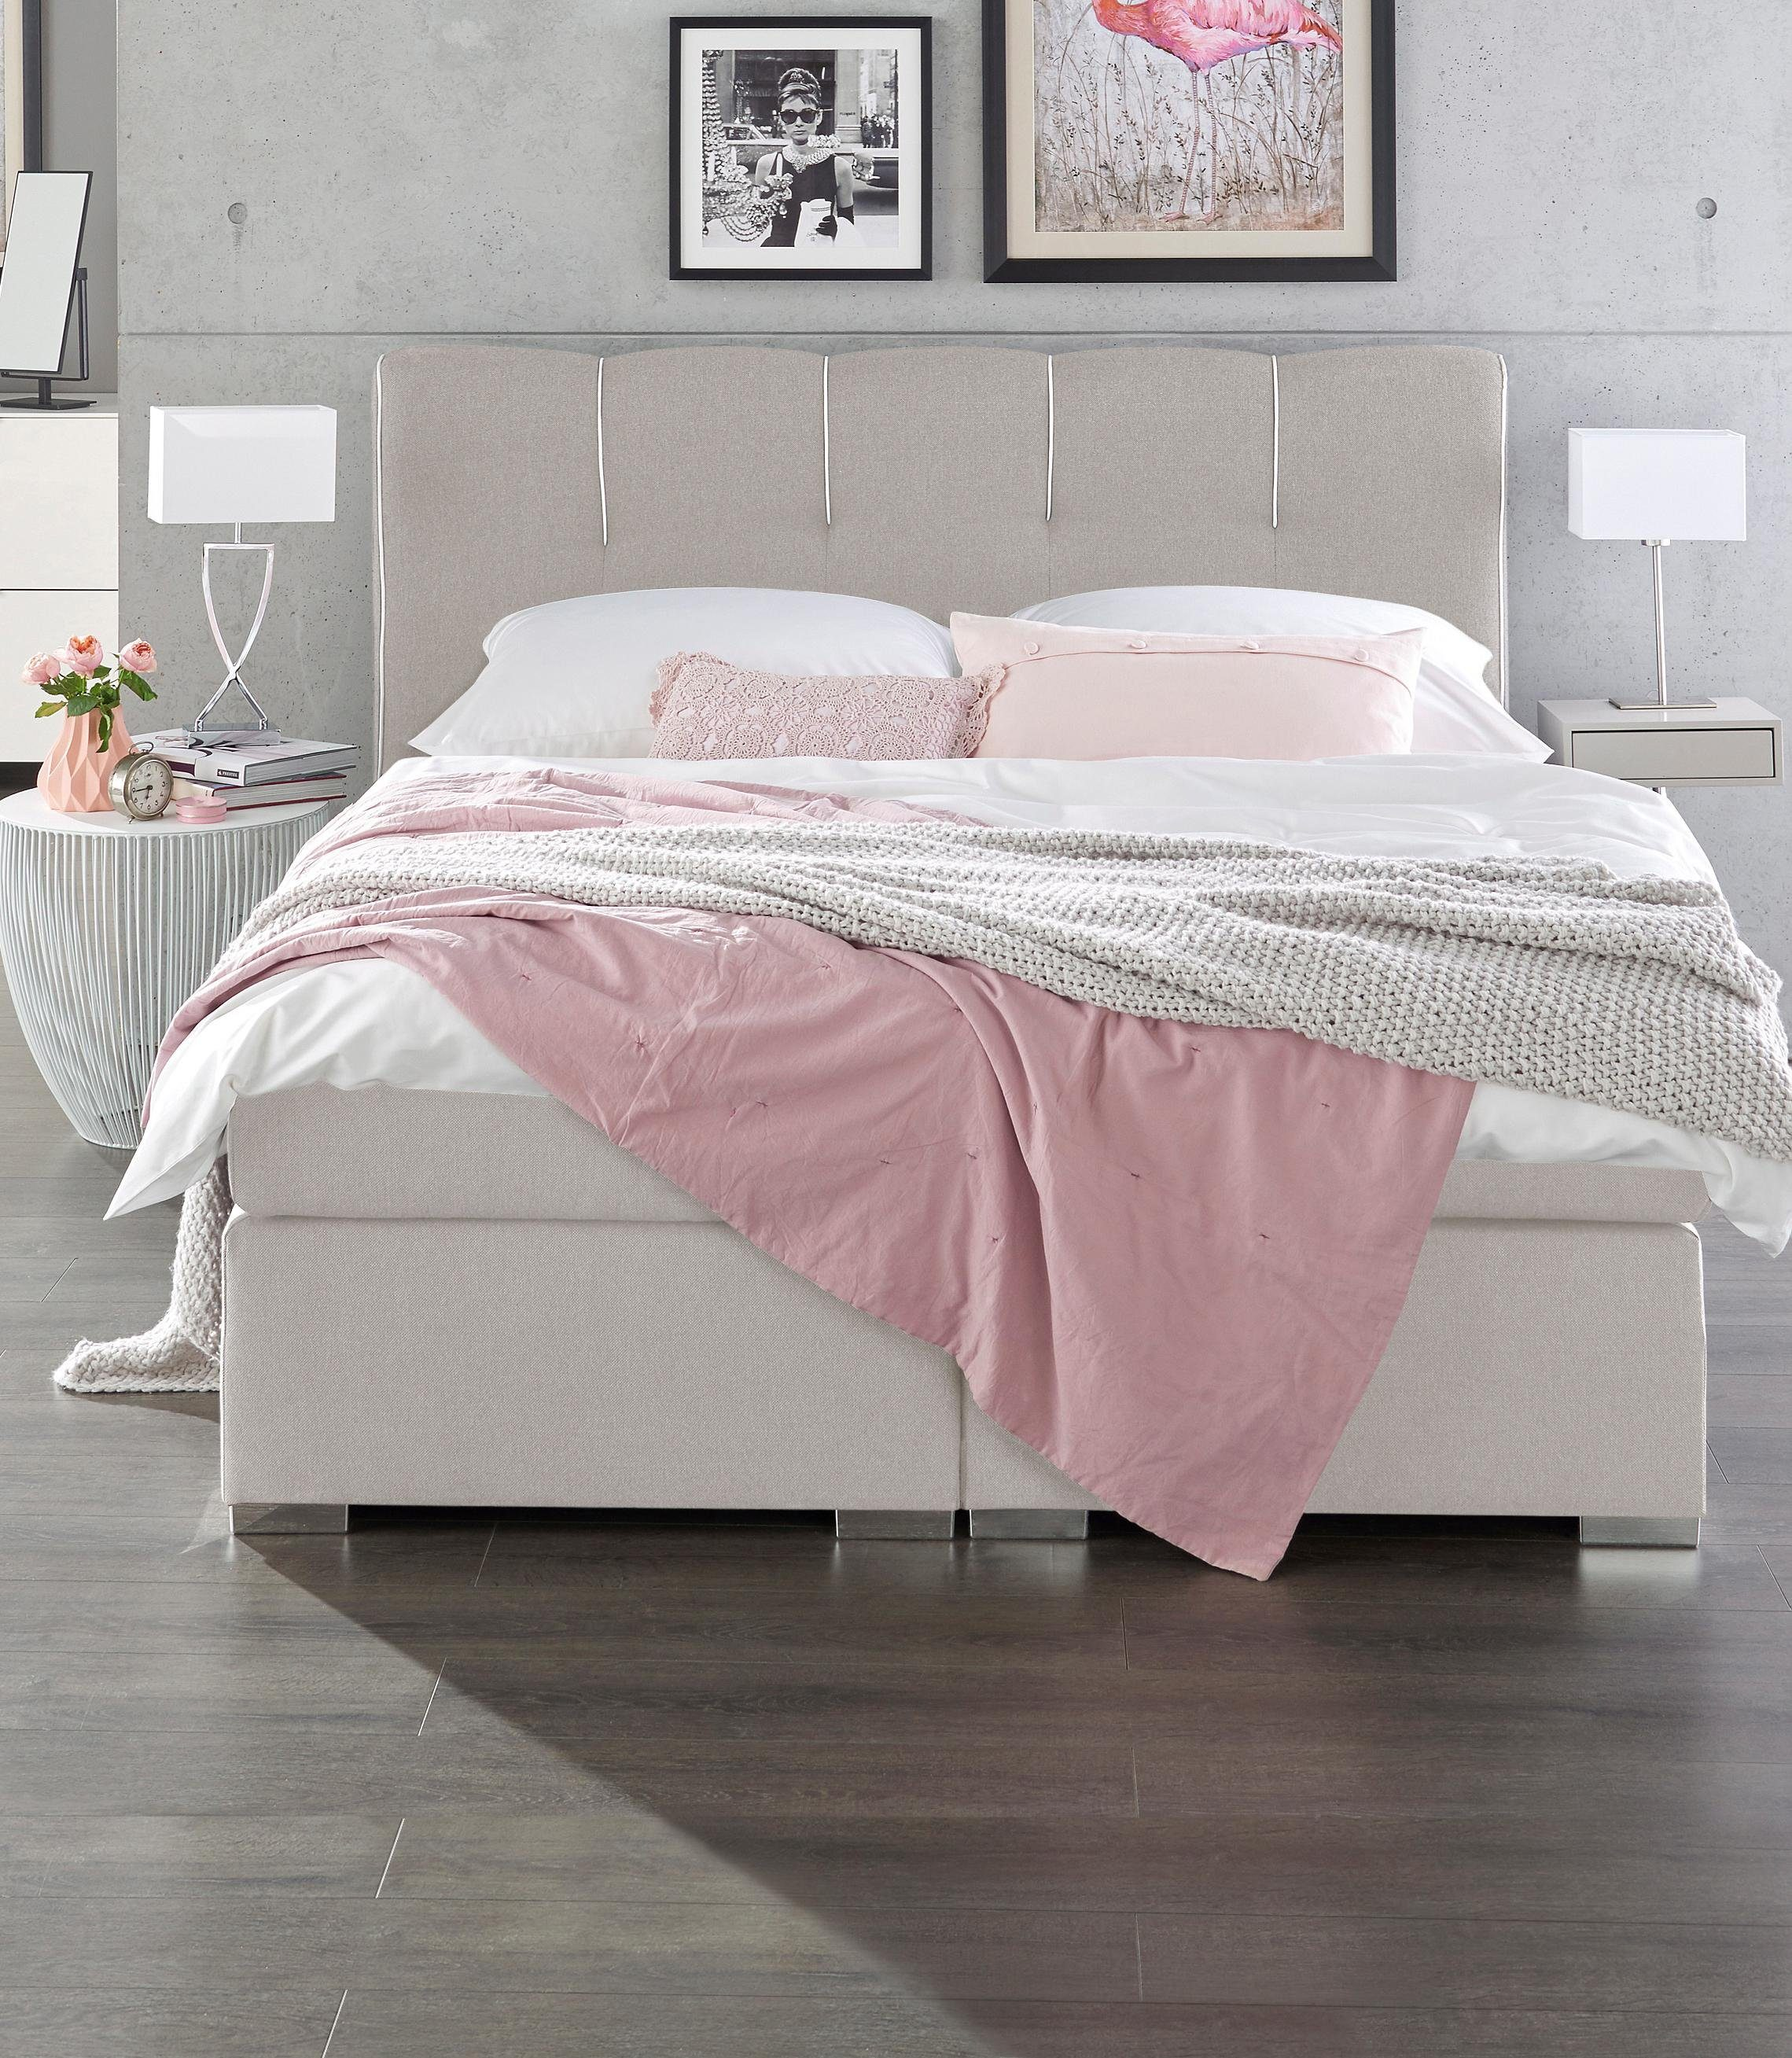 Boxspringbett Hersteller Set One By Musterring Boxspringbett »memphis« Inkl. Topper